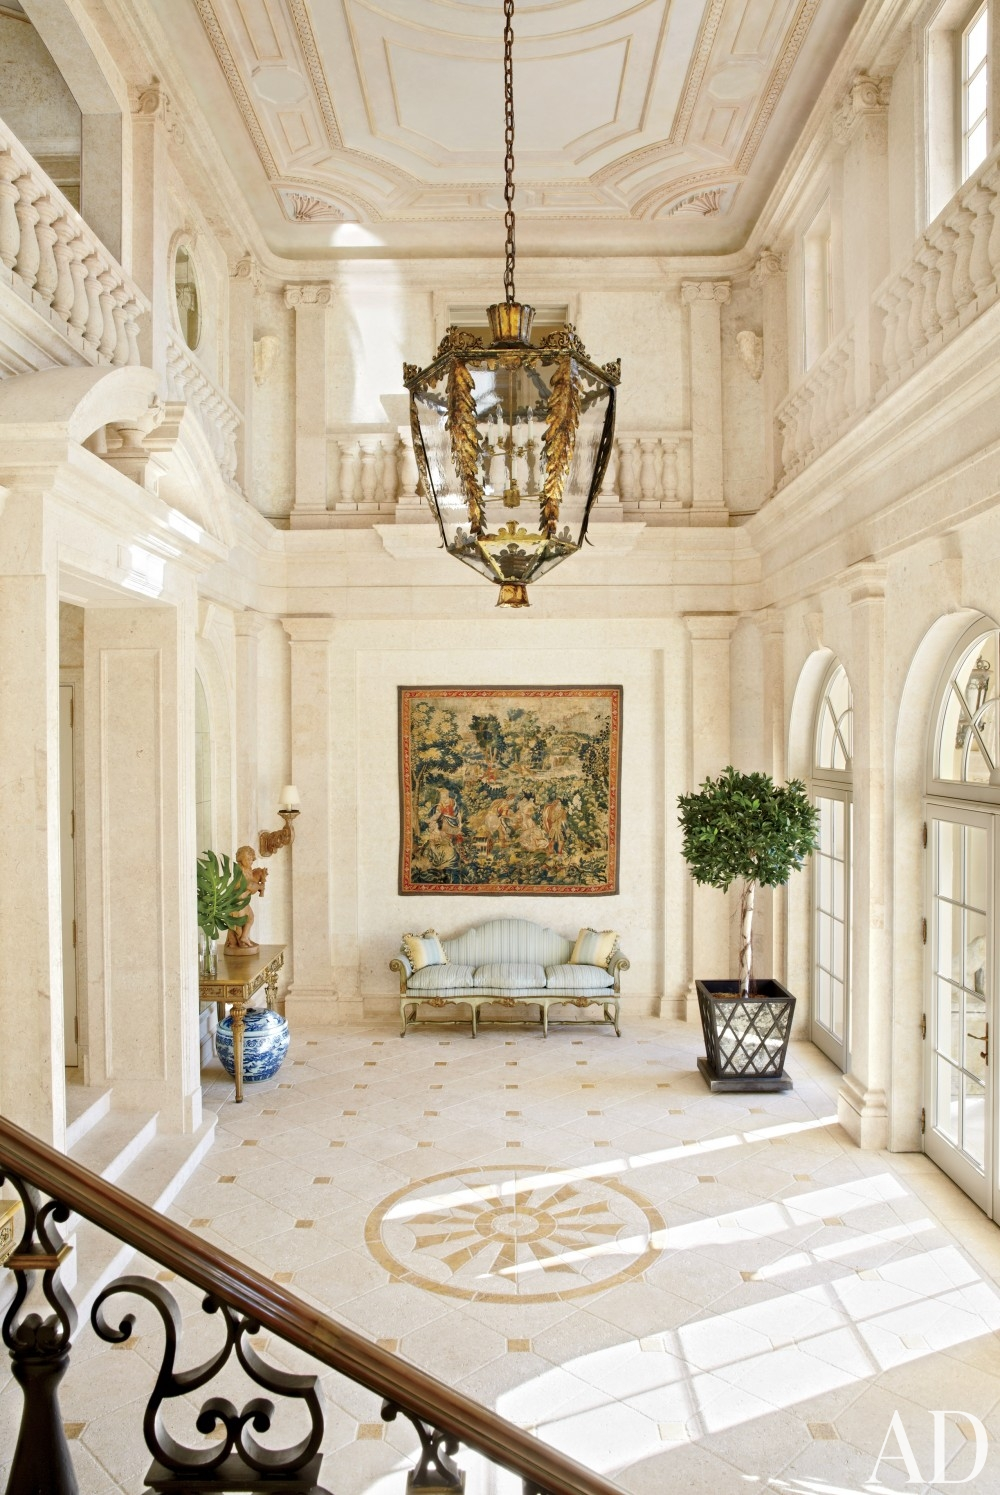 traditional-entrance-hall-david-easton-inc-palm-beach-florida foyer antique kilm on wall